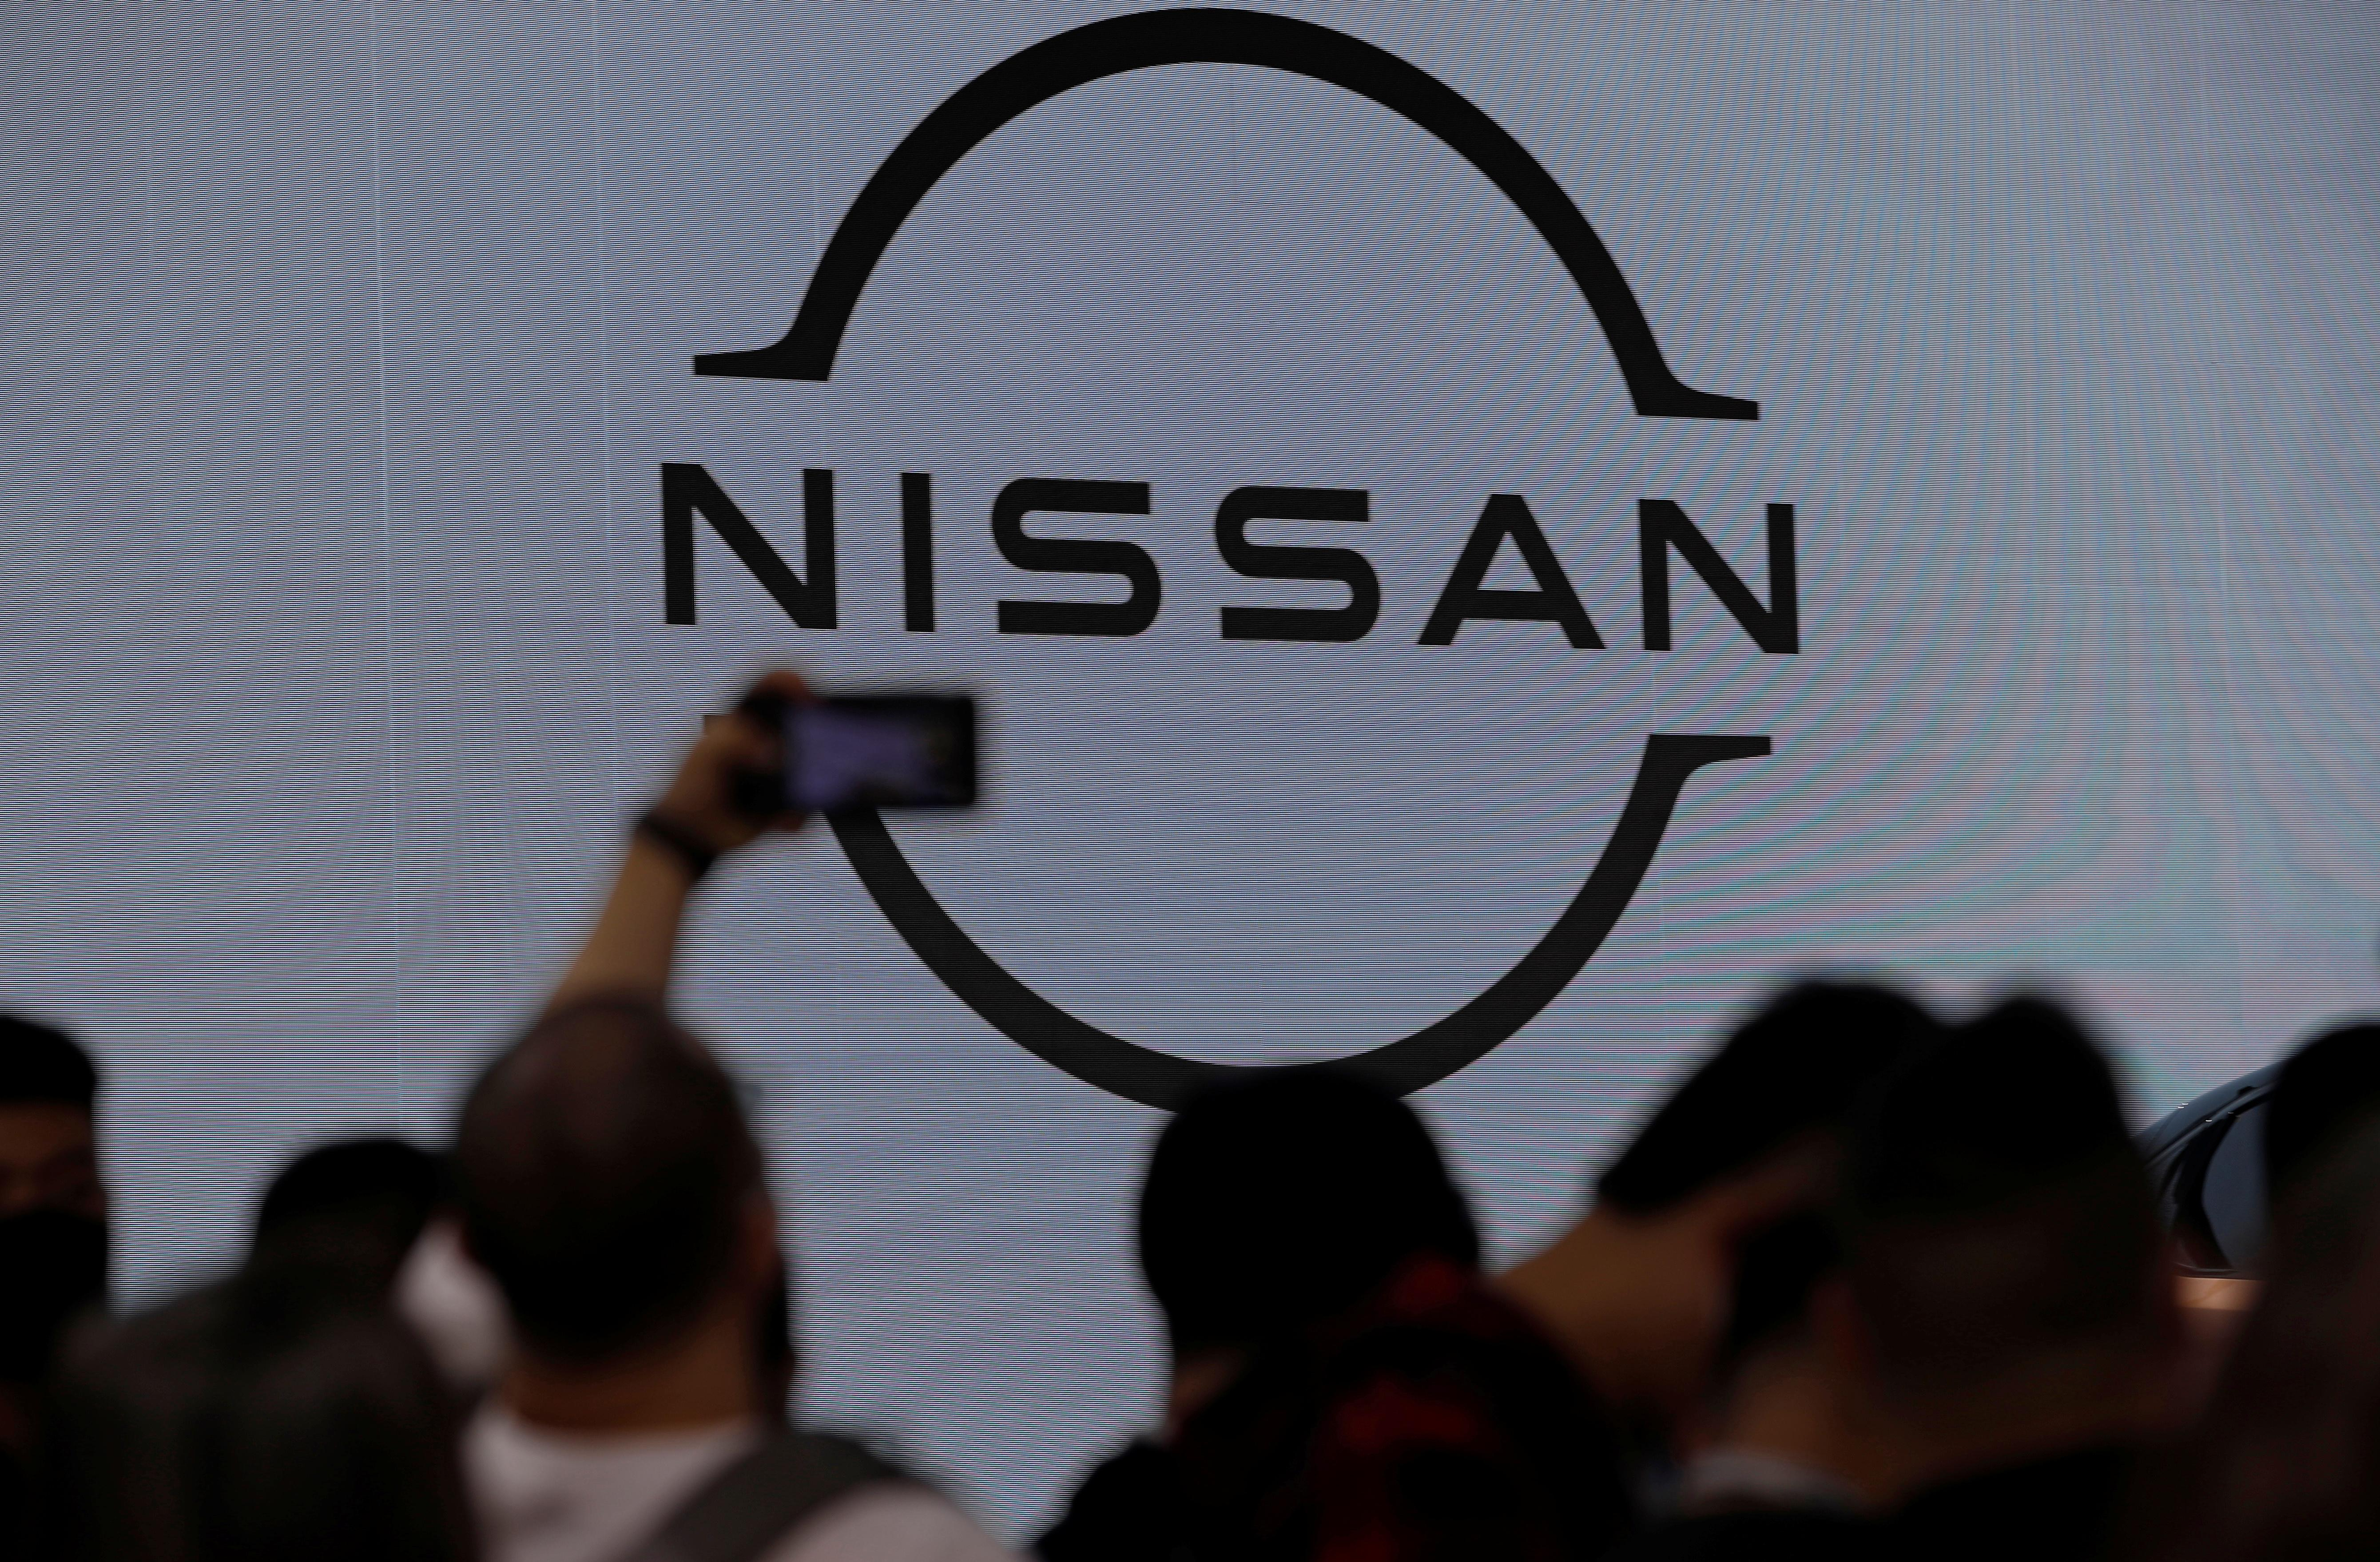 Nissan to raise output capacity in China by 30% - Yomiuri